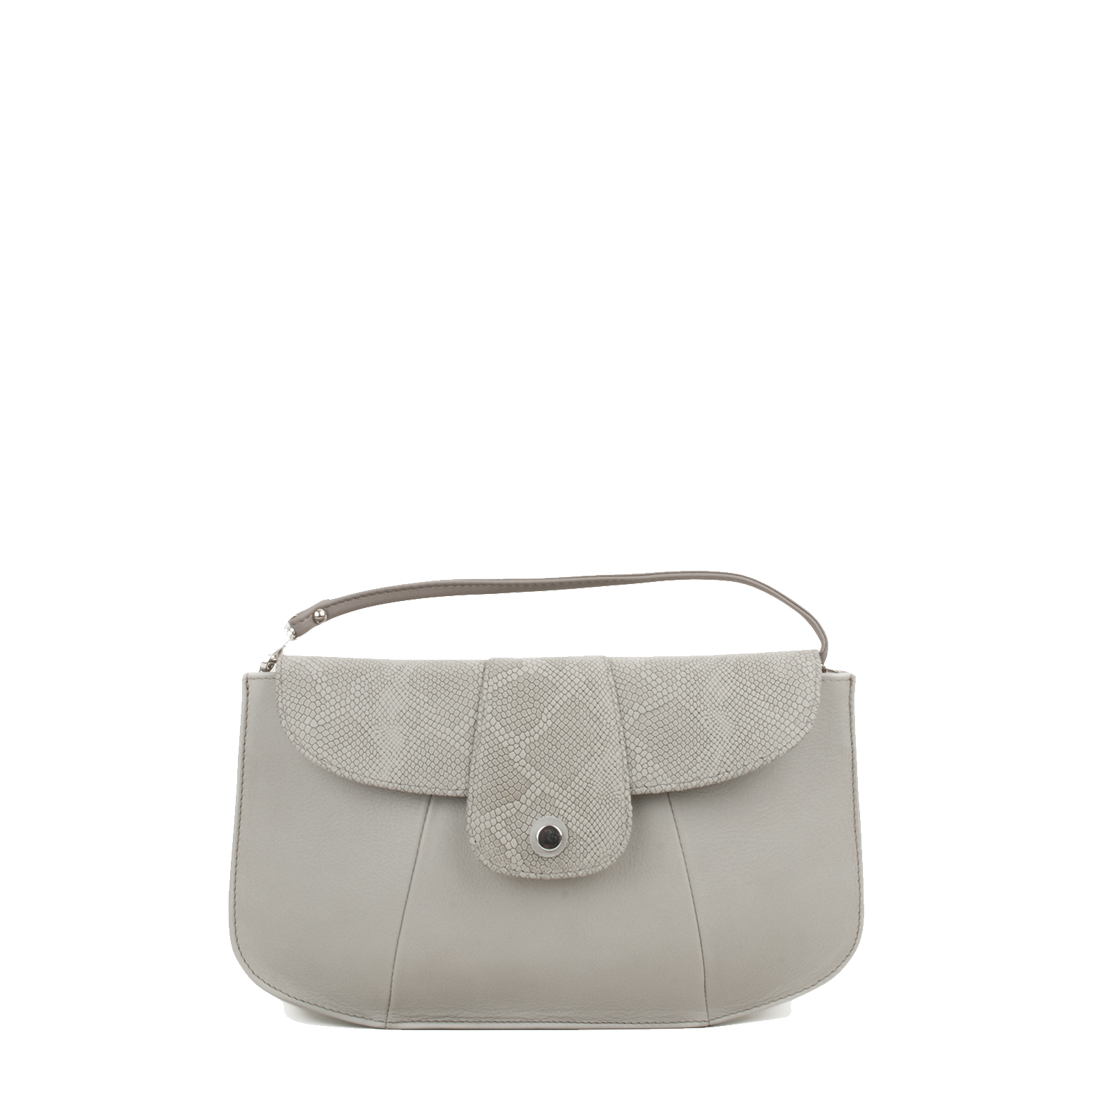 Ruby Pomice Leather Shoulder Bag